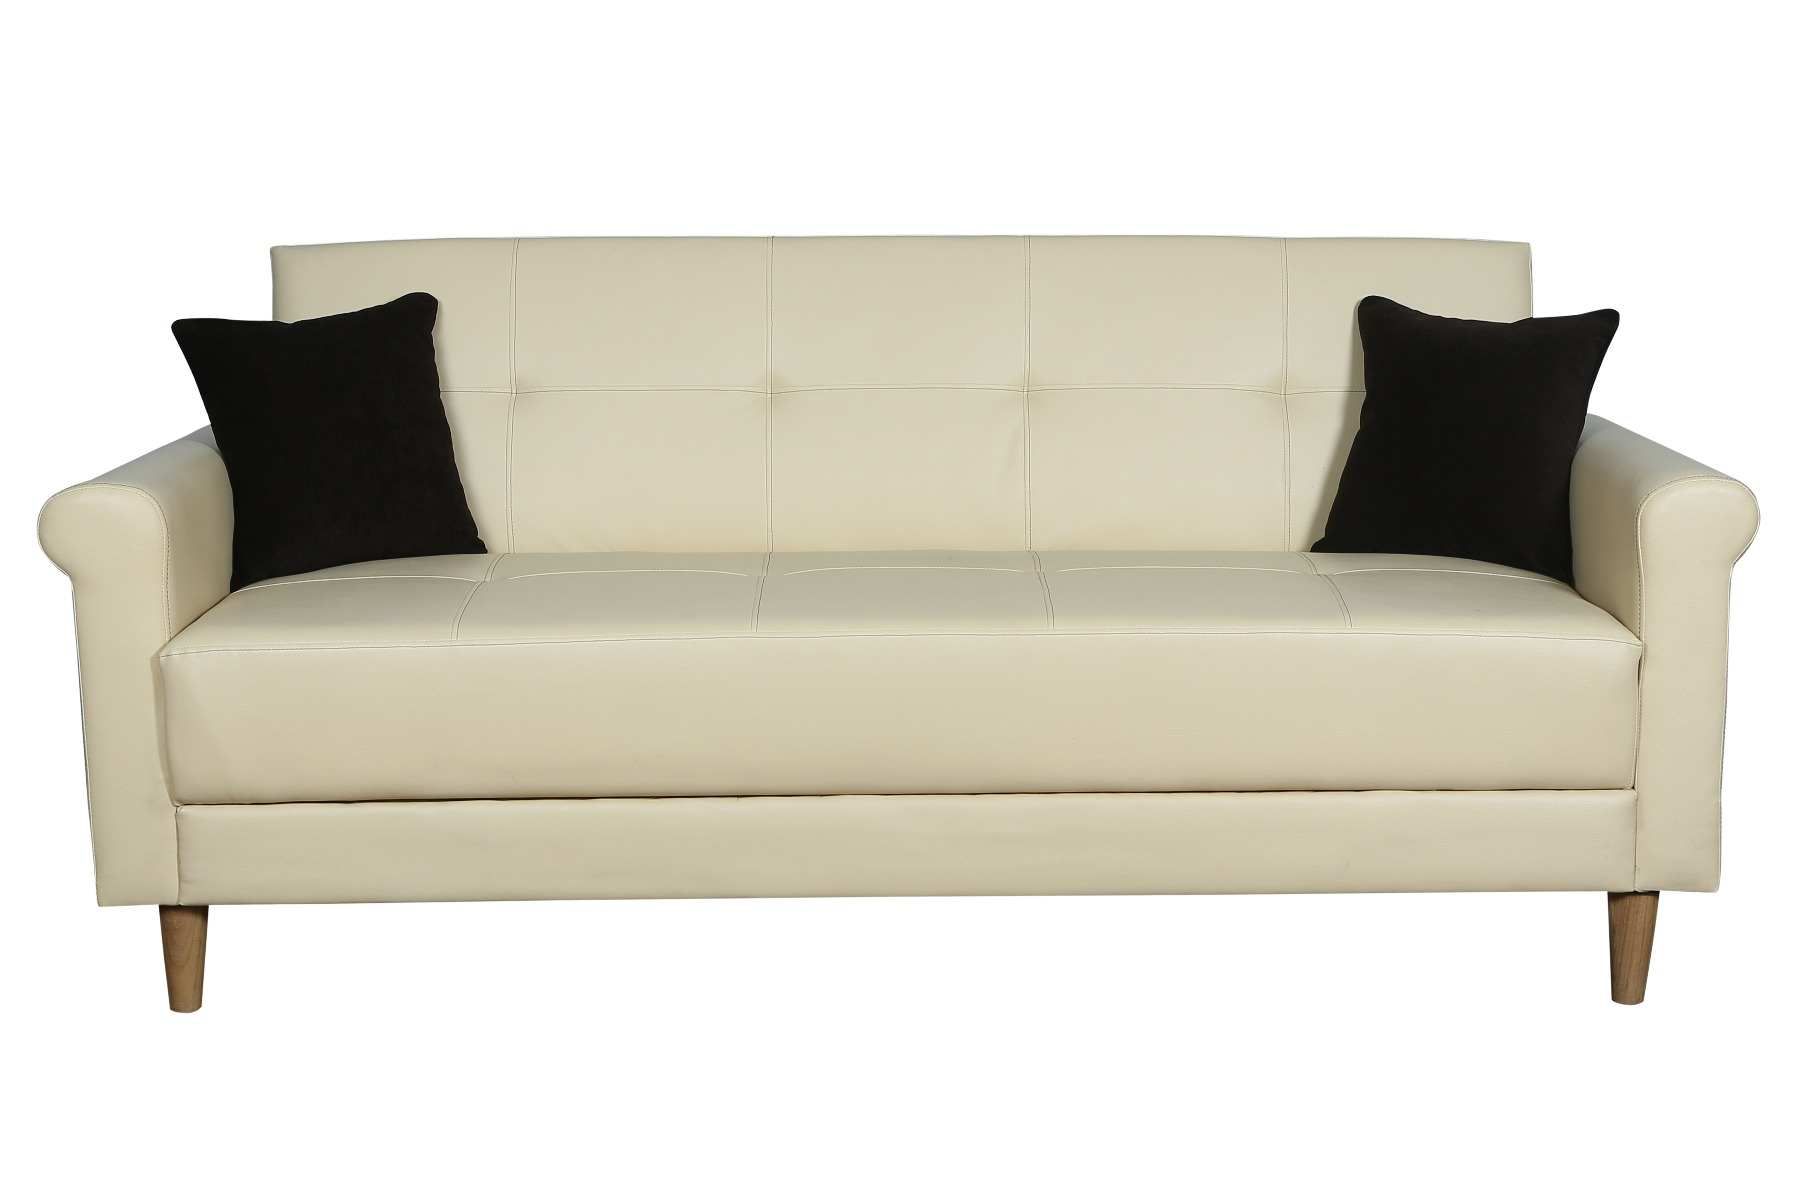 BREEZA 3 SEATER SOFA CUM BED IN LEATHERITE COLOR IVORY